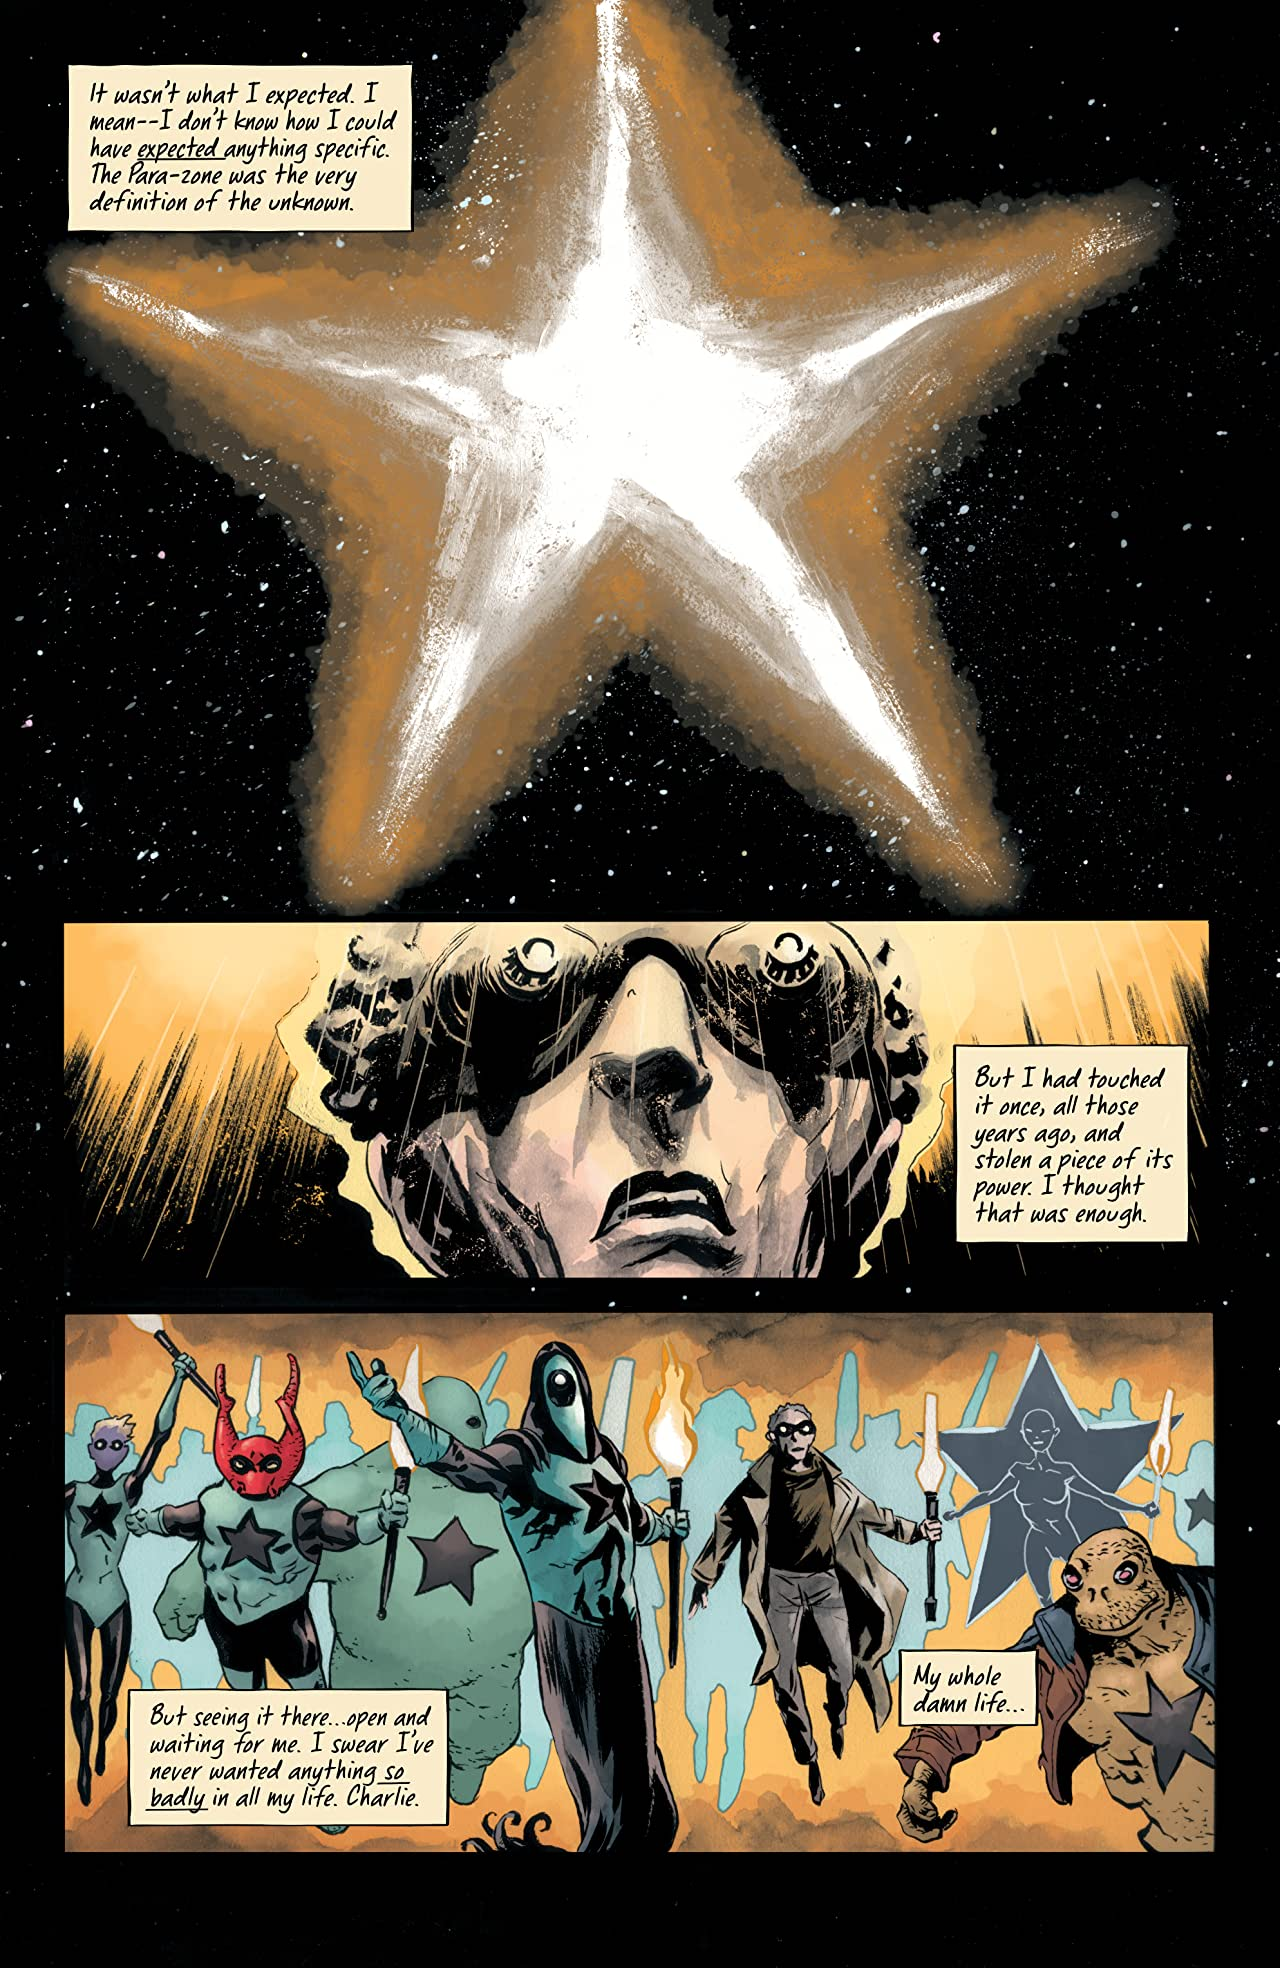 Doctor Star and the Kingdom of Lost Tomorrows: From the World of Black Hammer #4